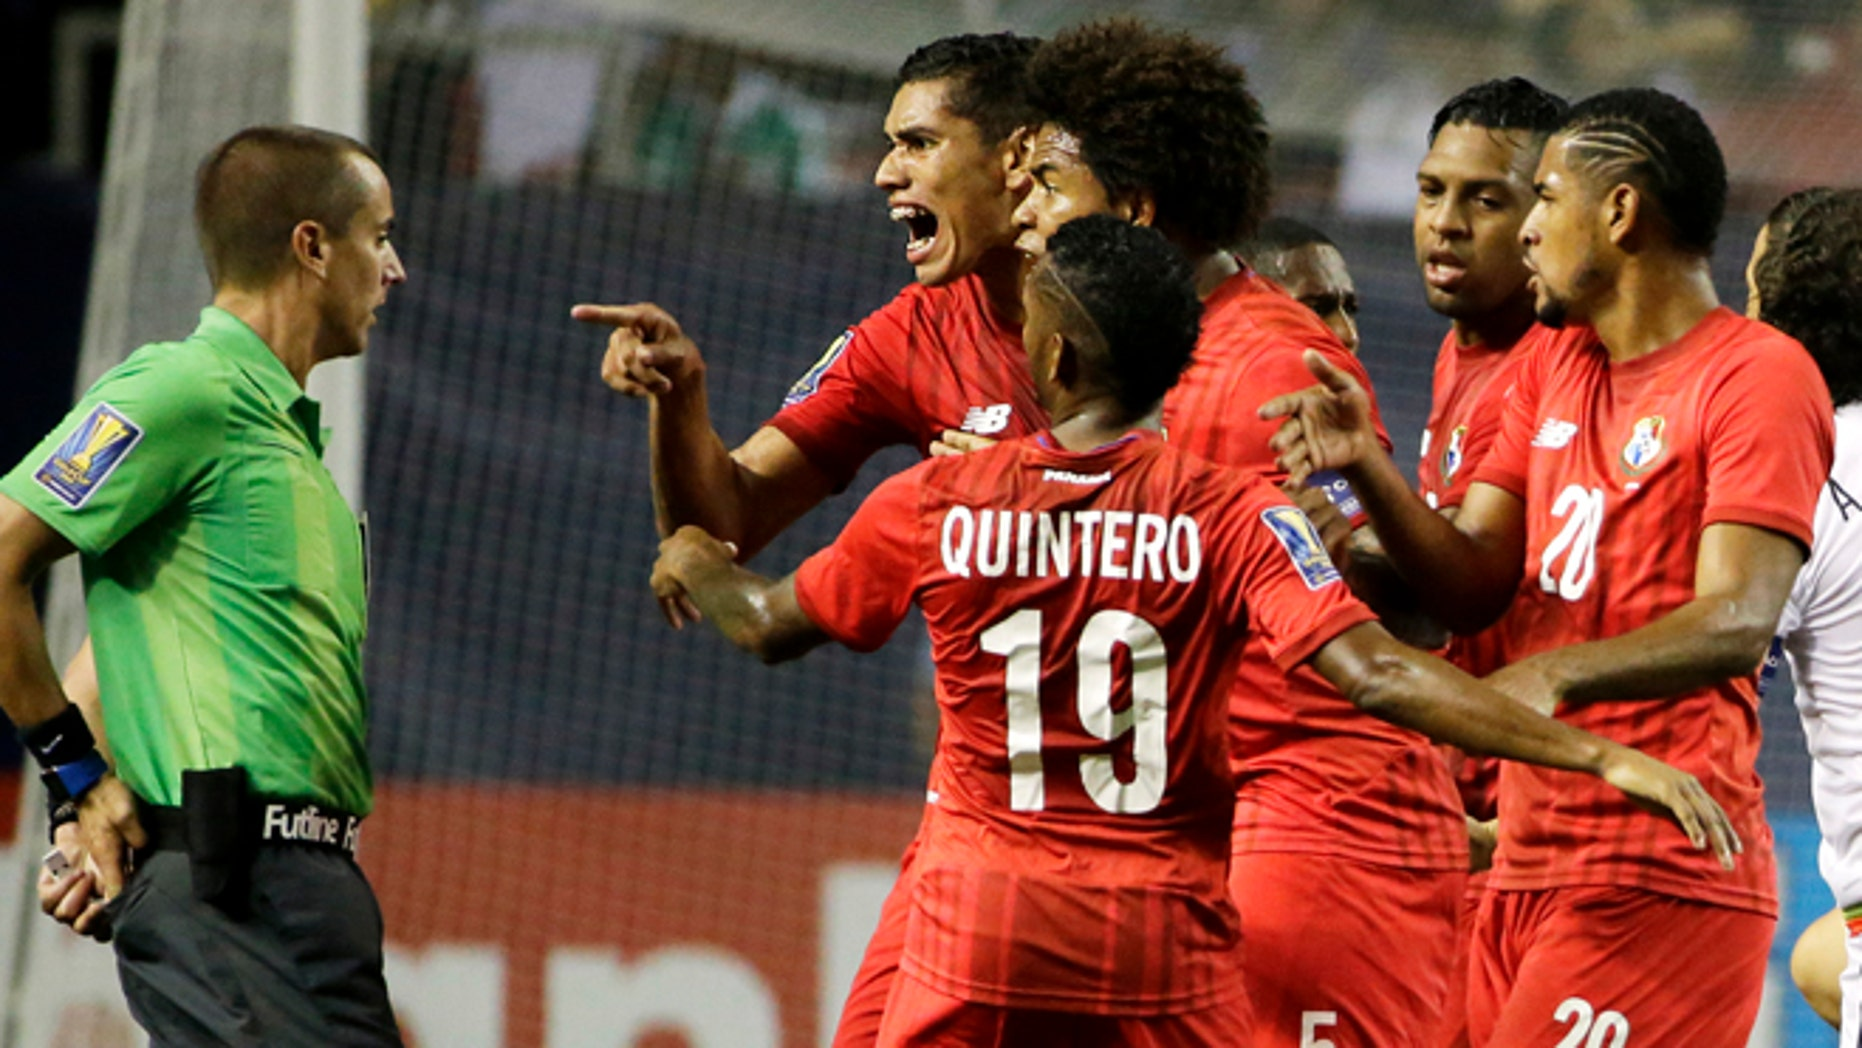 Panama's Valentin Pimentel, center right, points at referee Mark Geiger, who had given a red card to Panama's Luis Tejada, not seen, during the first half of Panama's CONCACAF Gold Cup soccer semifinal against Mexico on Wednesday, July 22, 2015, in Atlanta. (AP Photo/David Goldman)